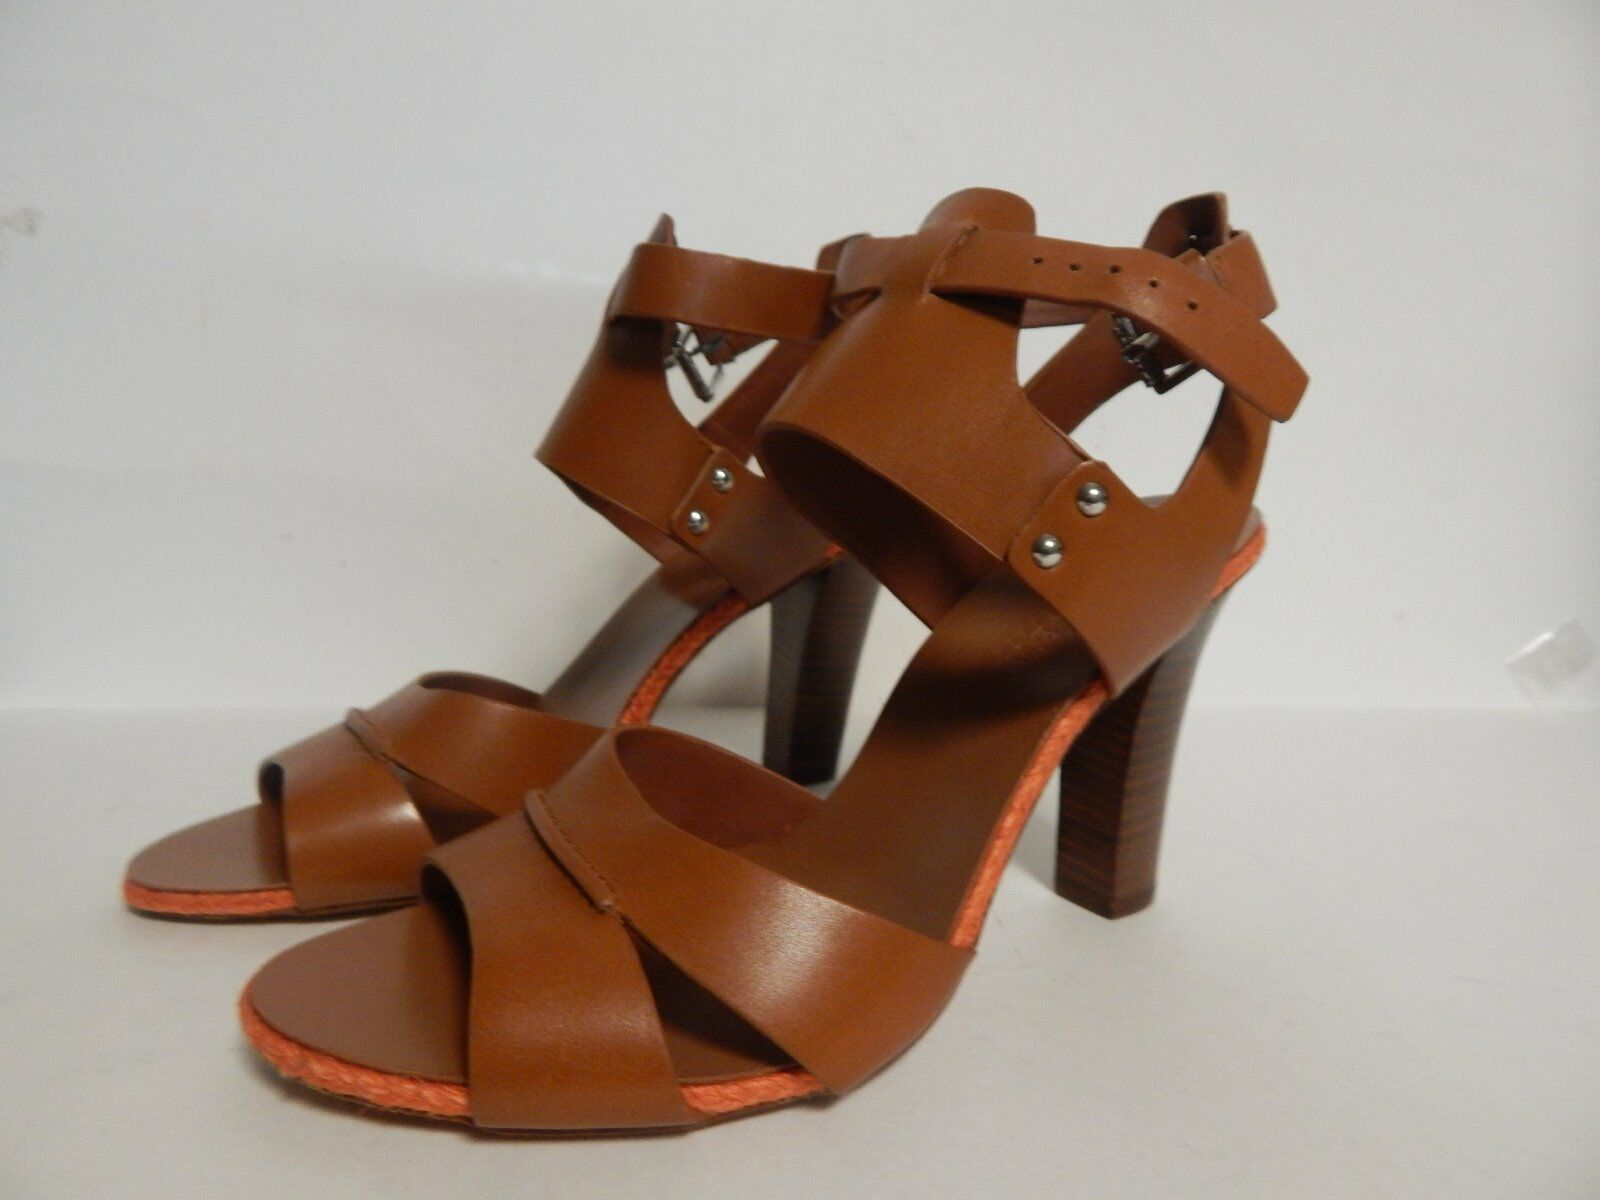 Ralph Lauren Lola Open  Toe Strappy Sandal 8M Polo Tan Leather New with Box  designer online